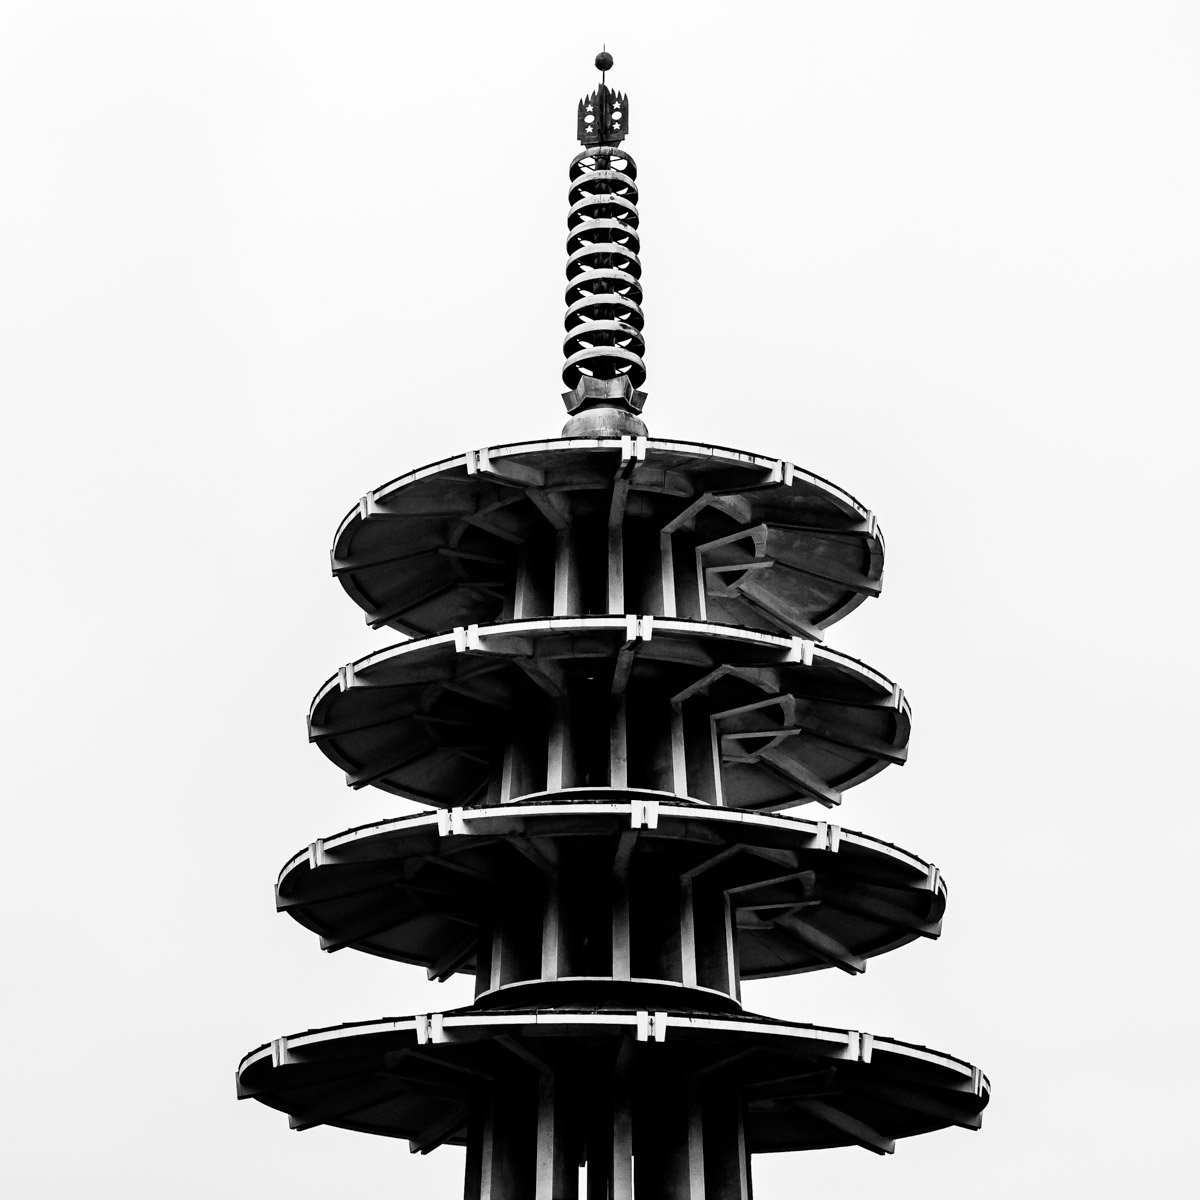 Architectural detail of the modernist Peace Pagoda in San Francisco's Japantown neighborhood.